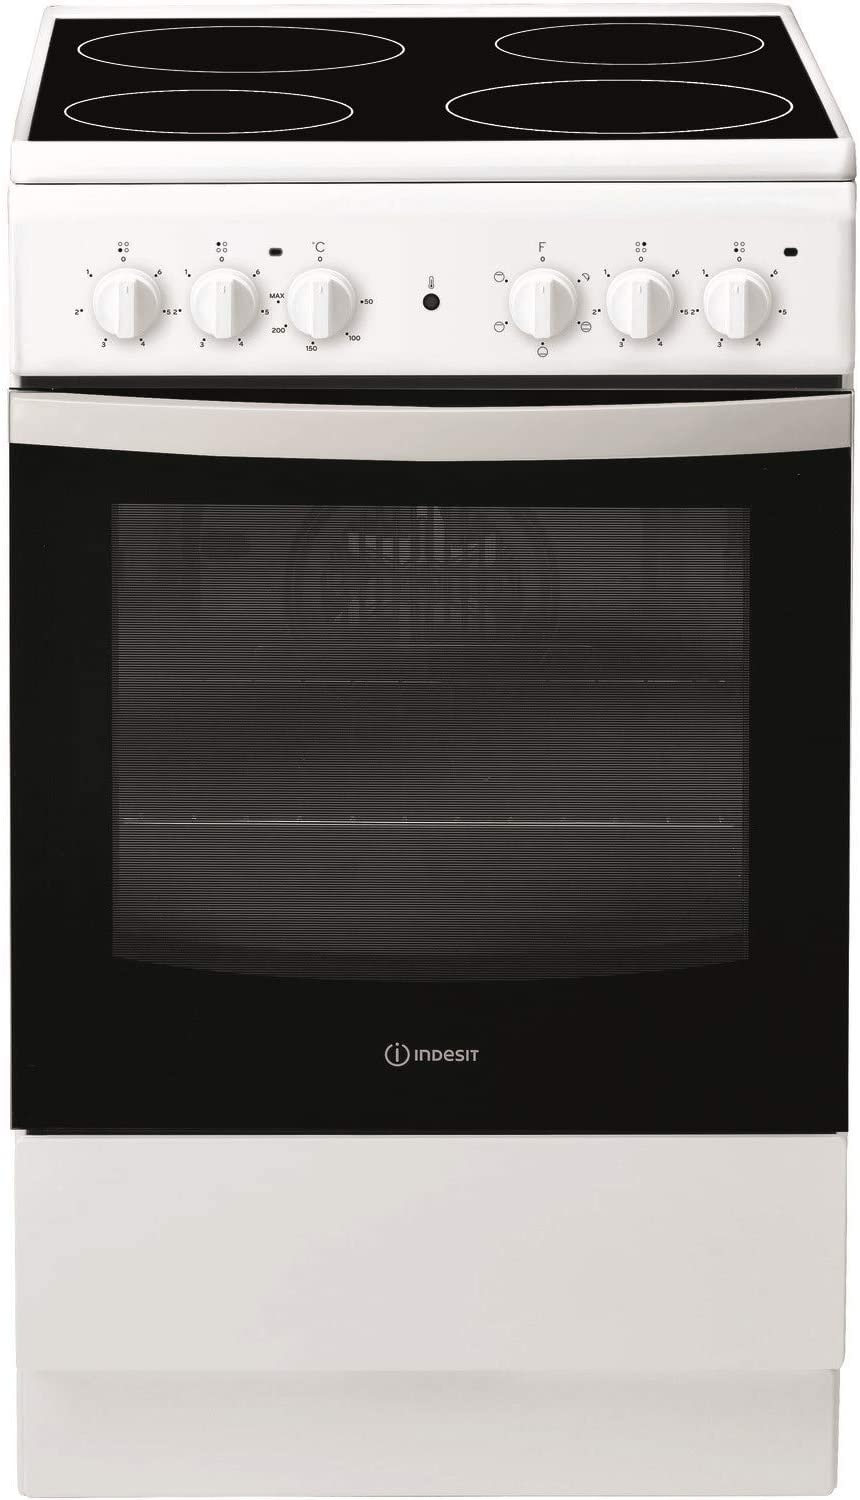 Indesit IS5V4KHW 50cm Single Oven Electric Cooker